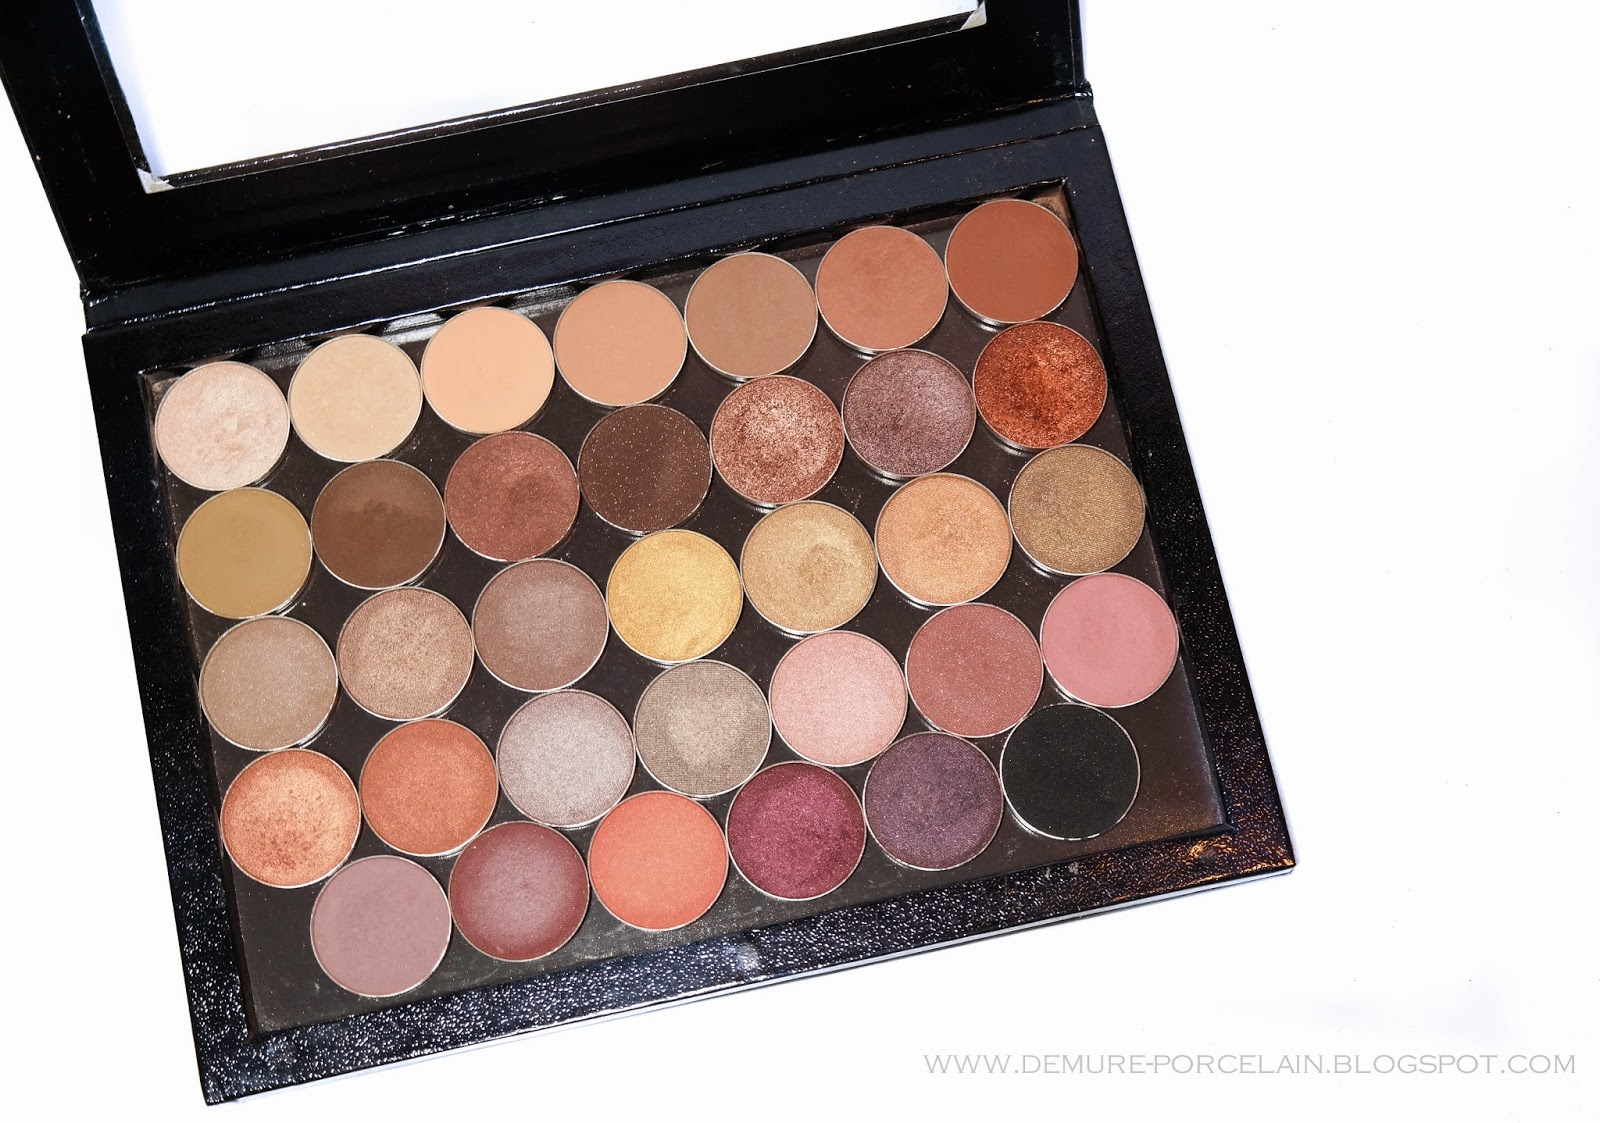 I Ve Really Warmed To The Idea Of Purchasing Single Pan Eyeshadows Ever Since Started My Makeup Geek Eyeshadow Collection Think Building Your Own